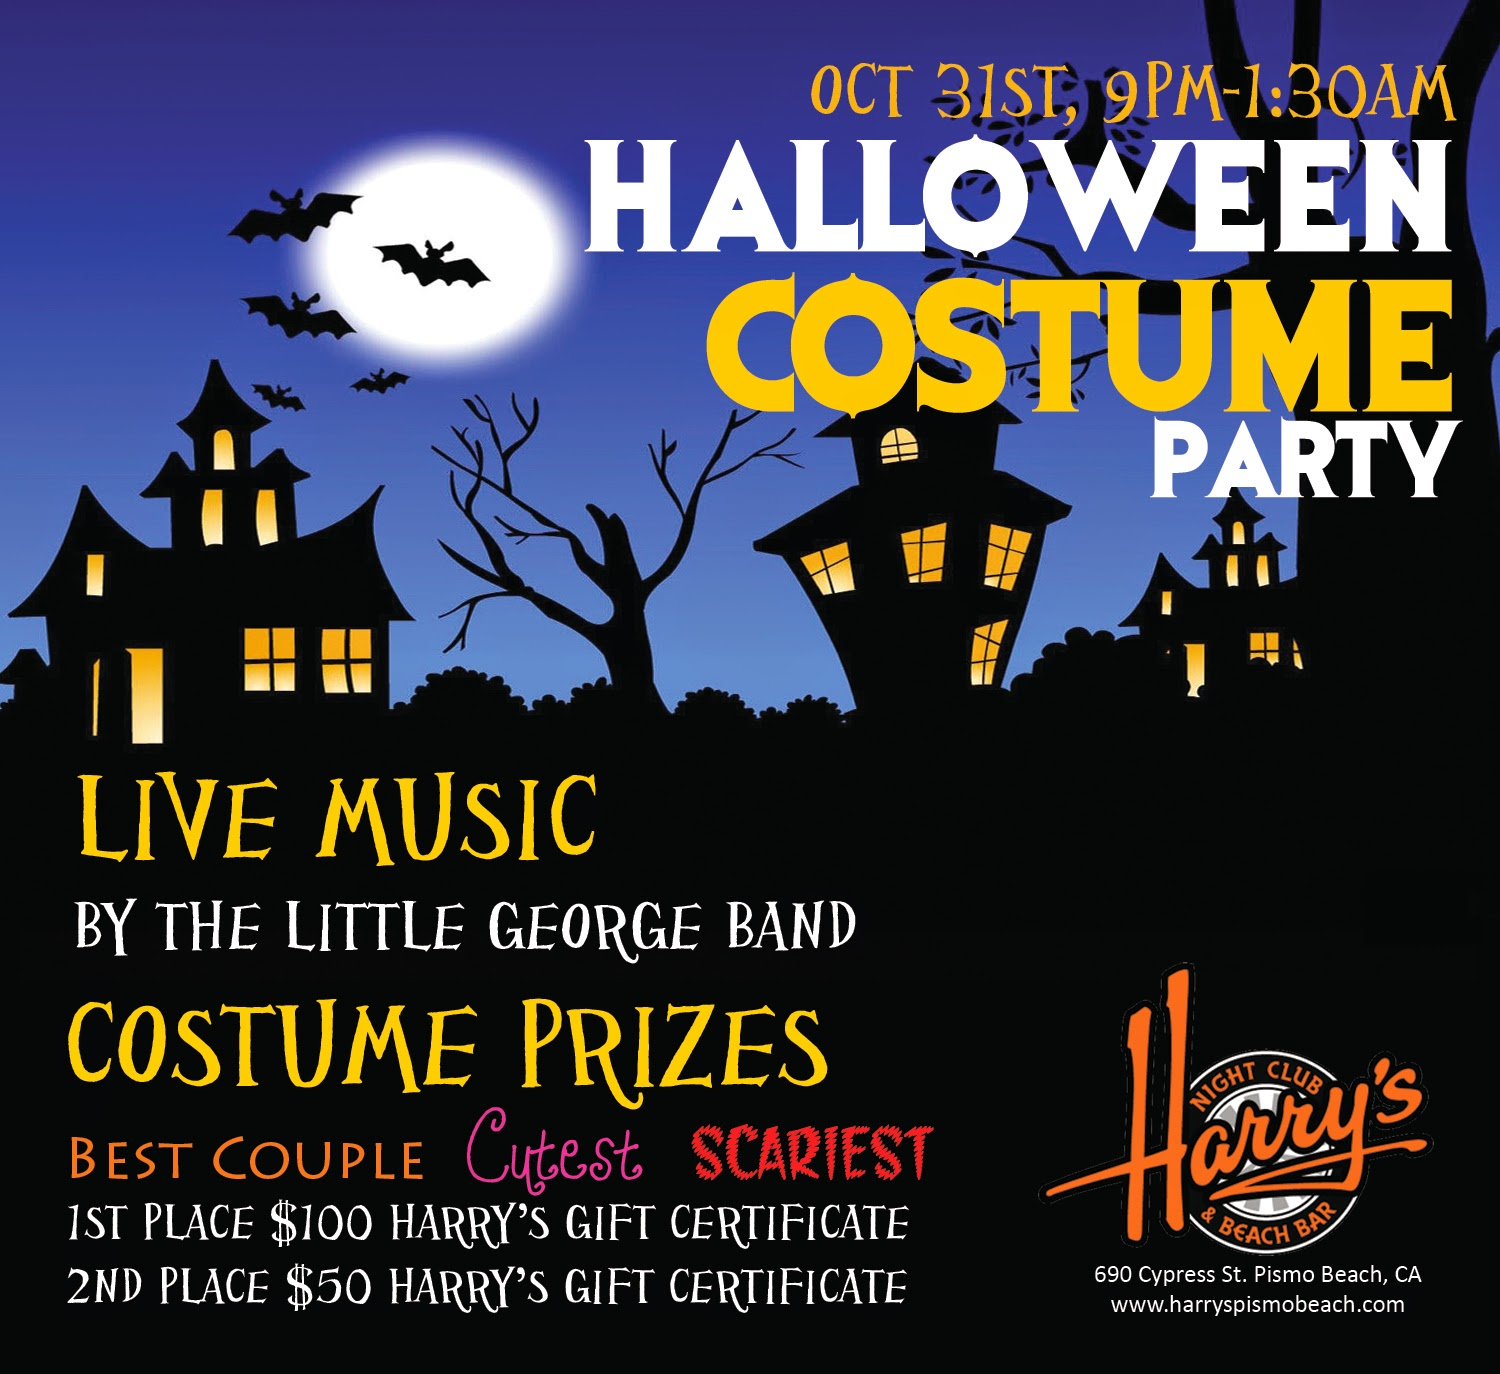 Harry's Night Club & Beach Bar: Join us for our annual Halloween ...